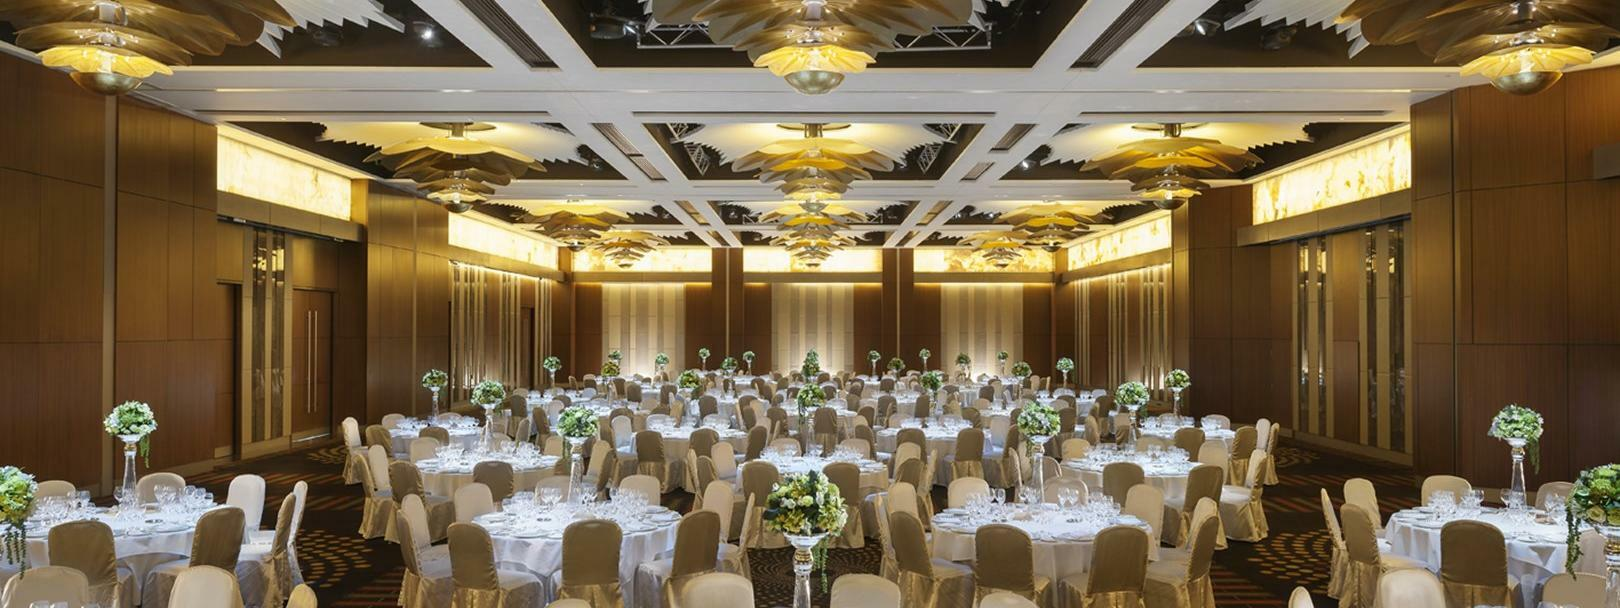 A room meeting room with decorated round tables at Crown Hotel Perth